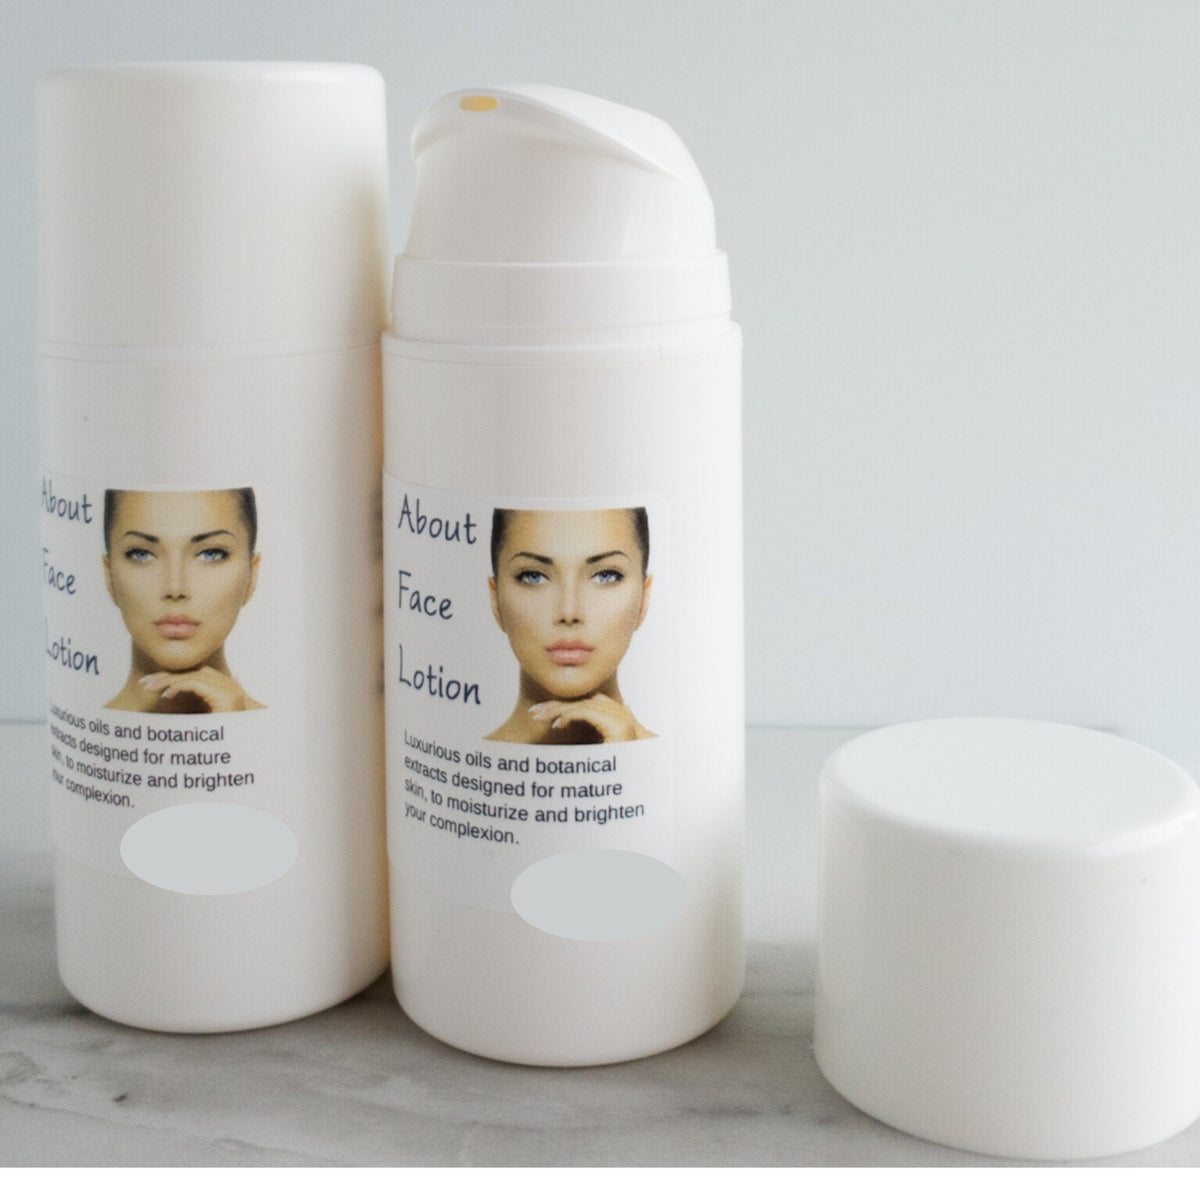 ABOUT FACE Lotion for Mature Skin